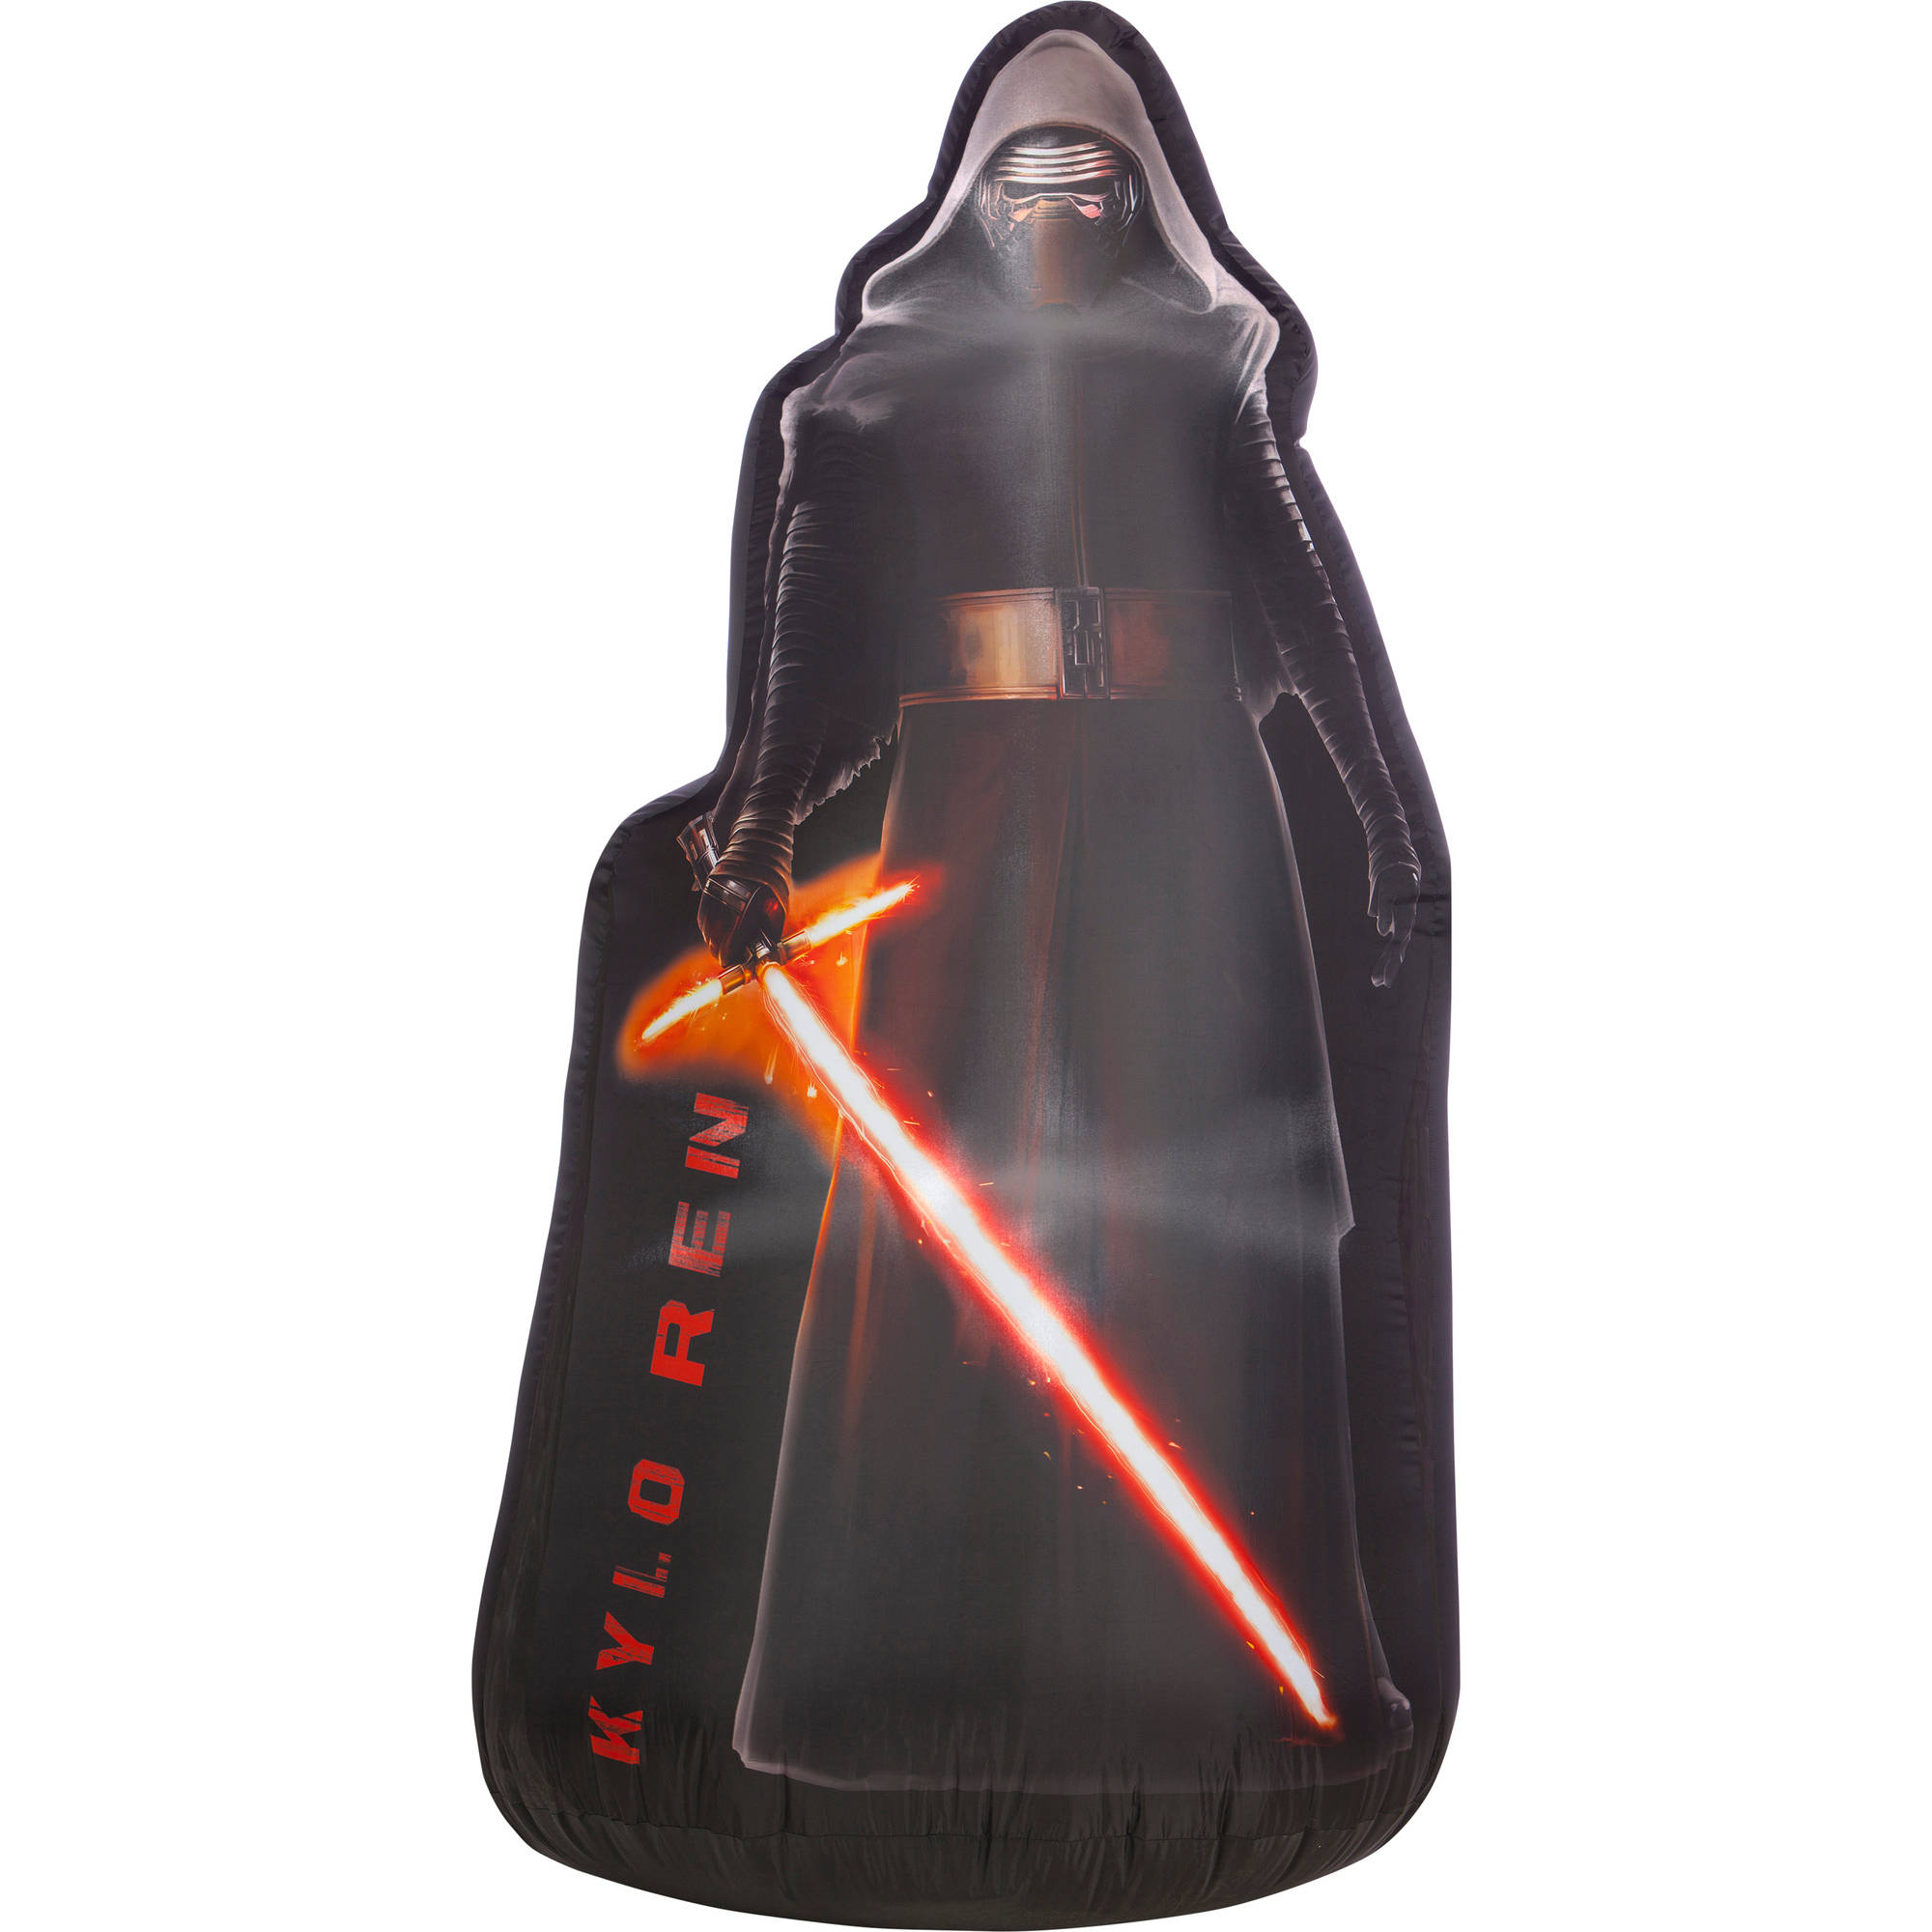 5' Air blown Inflatable Photorealistic Kylo Ren Star Wars Inflatable